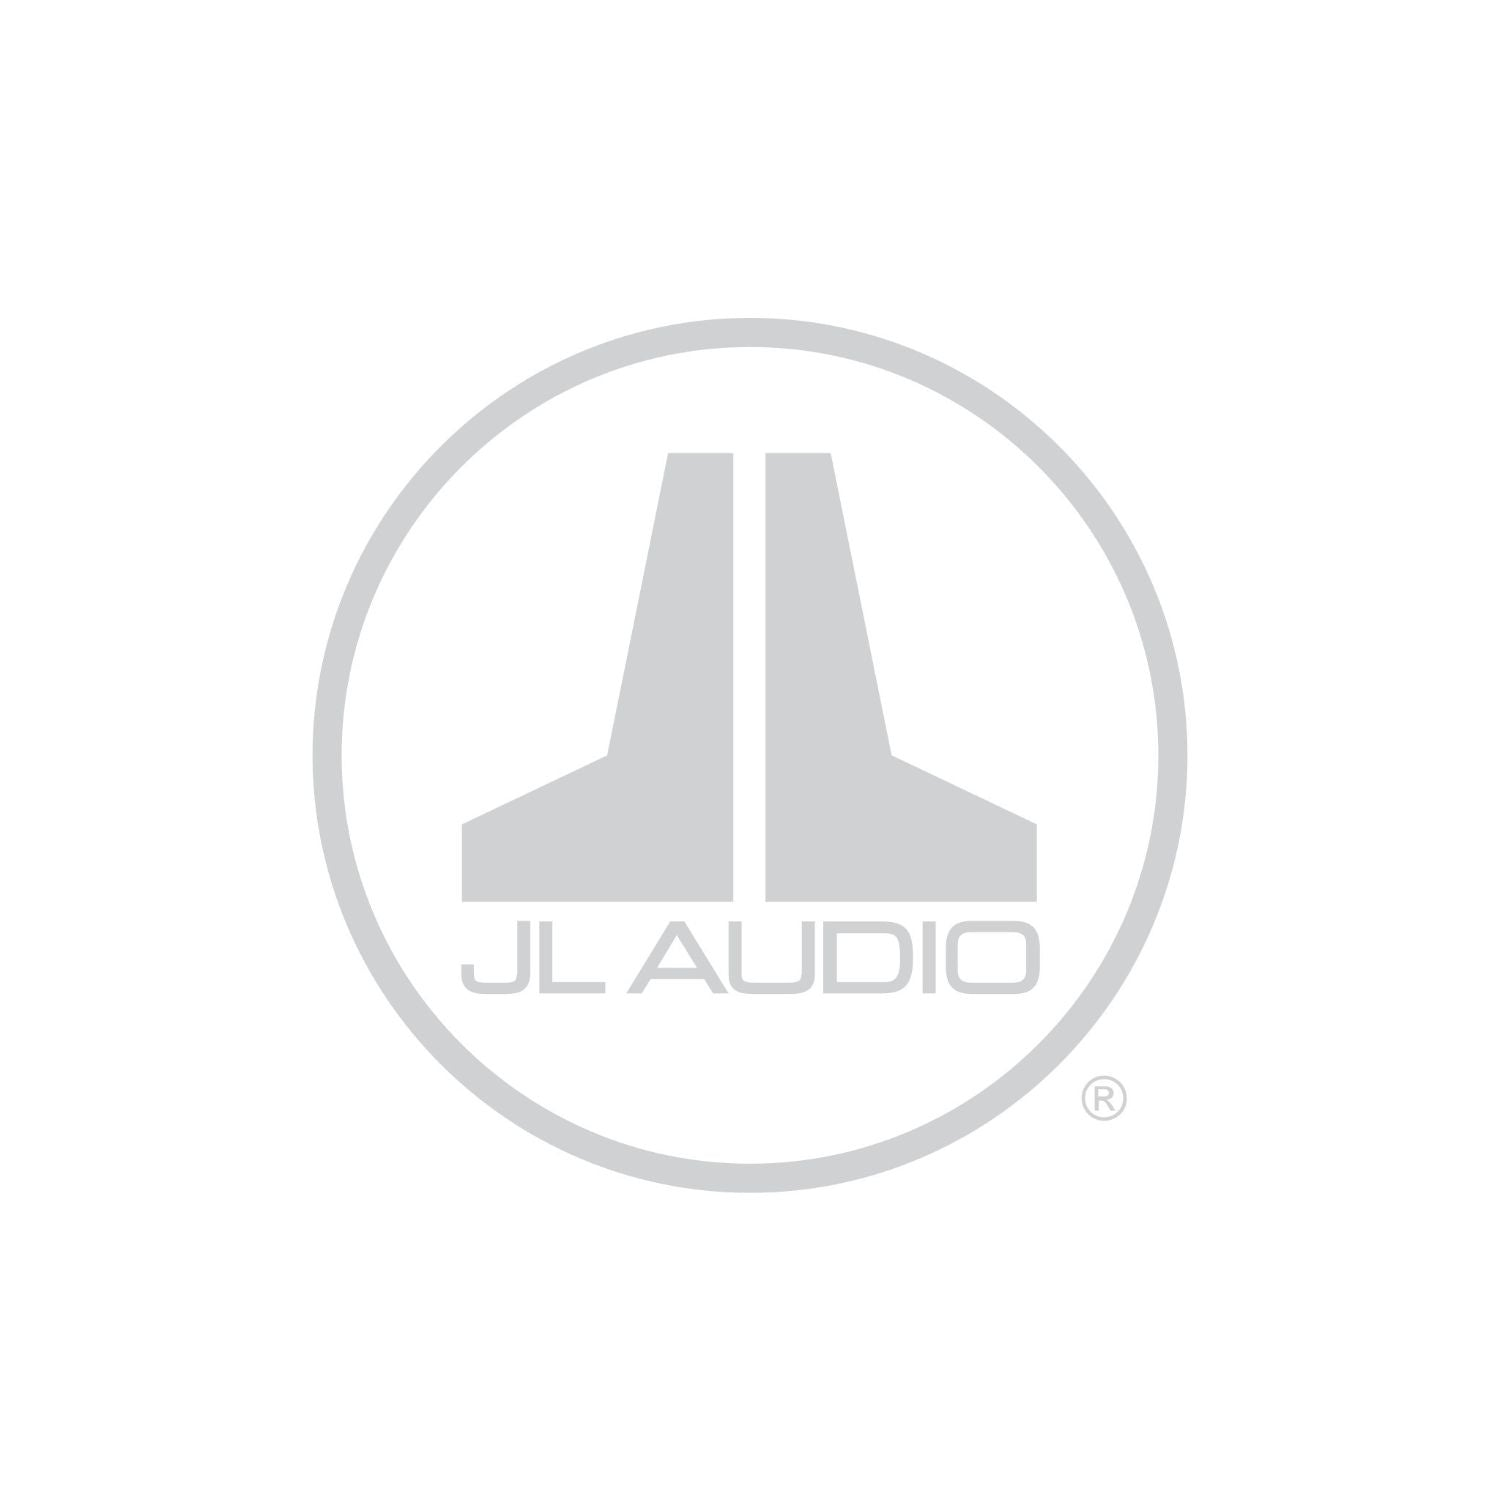 Silver JL Audio Badge Logo Decal